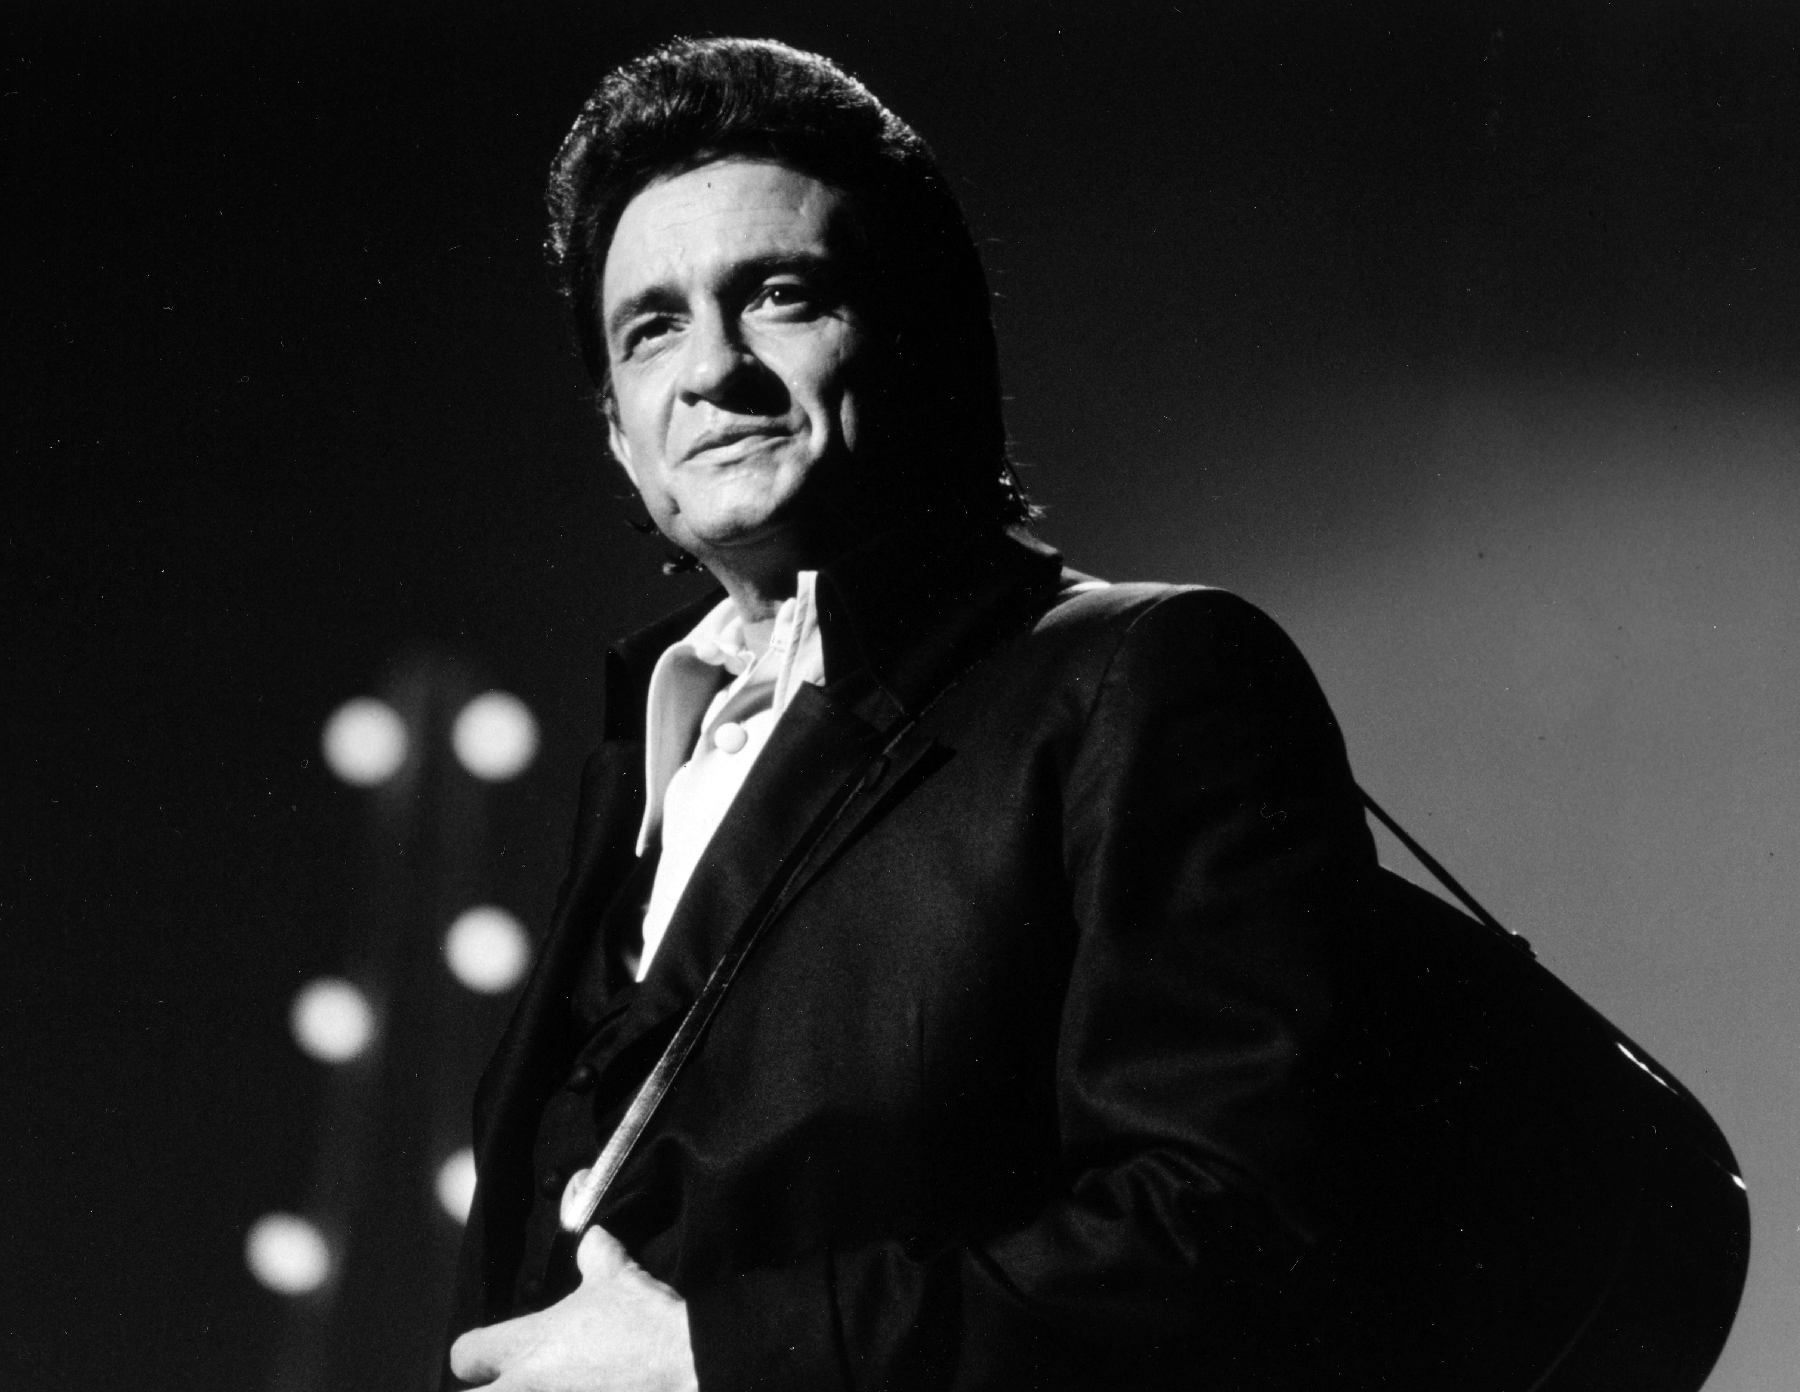 Johnny Cash Has 'Four or Five More' Albums' Worth of Songs, Says Son